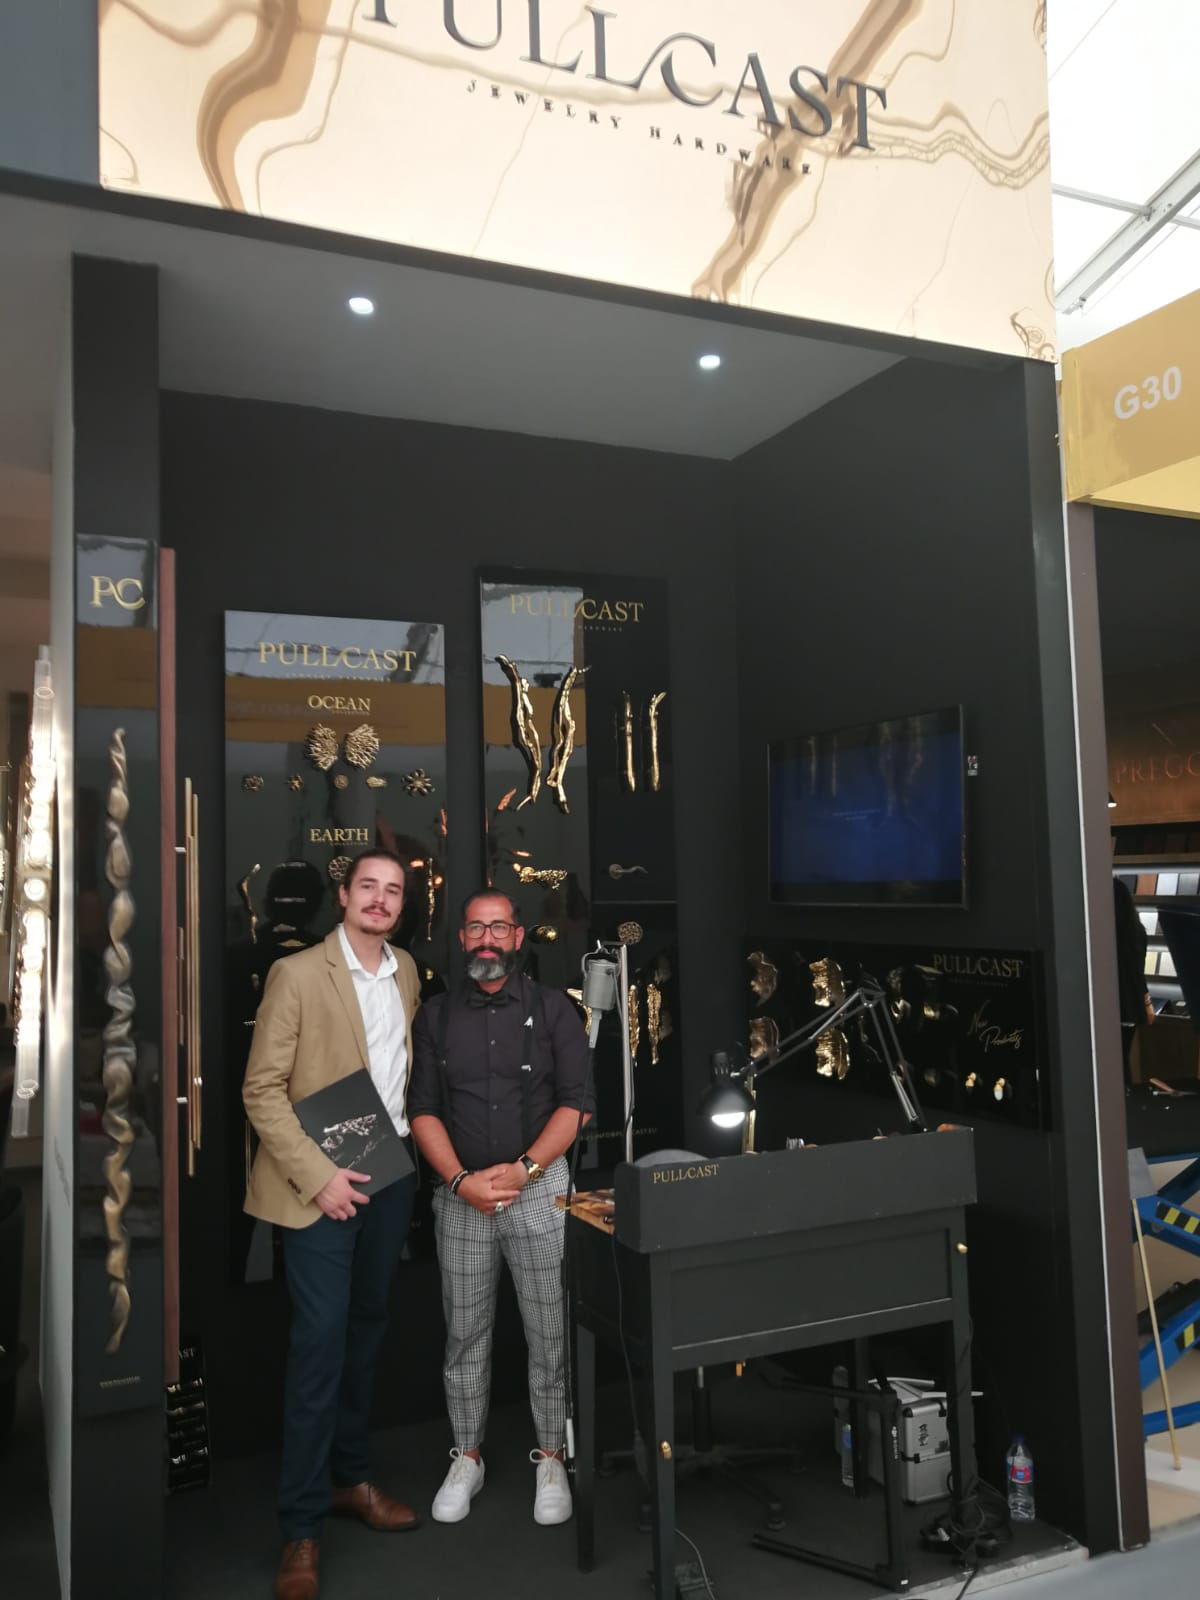 decorex Decorex Ends Tomorrow! Have You Visited PullCast? WhatsApp Image 2018 09 17 at 12